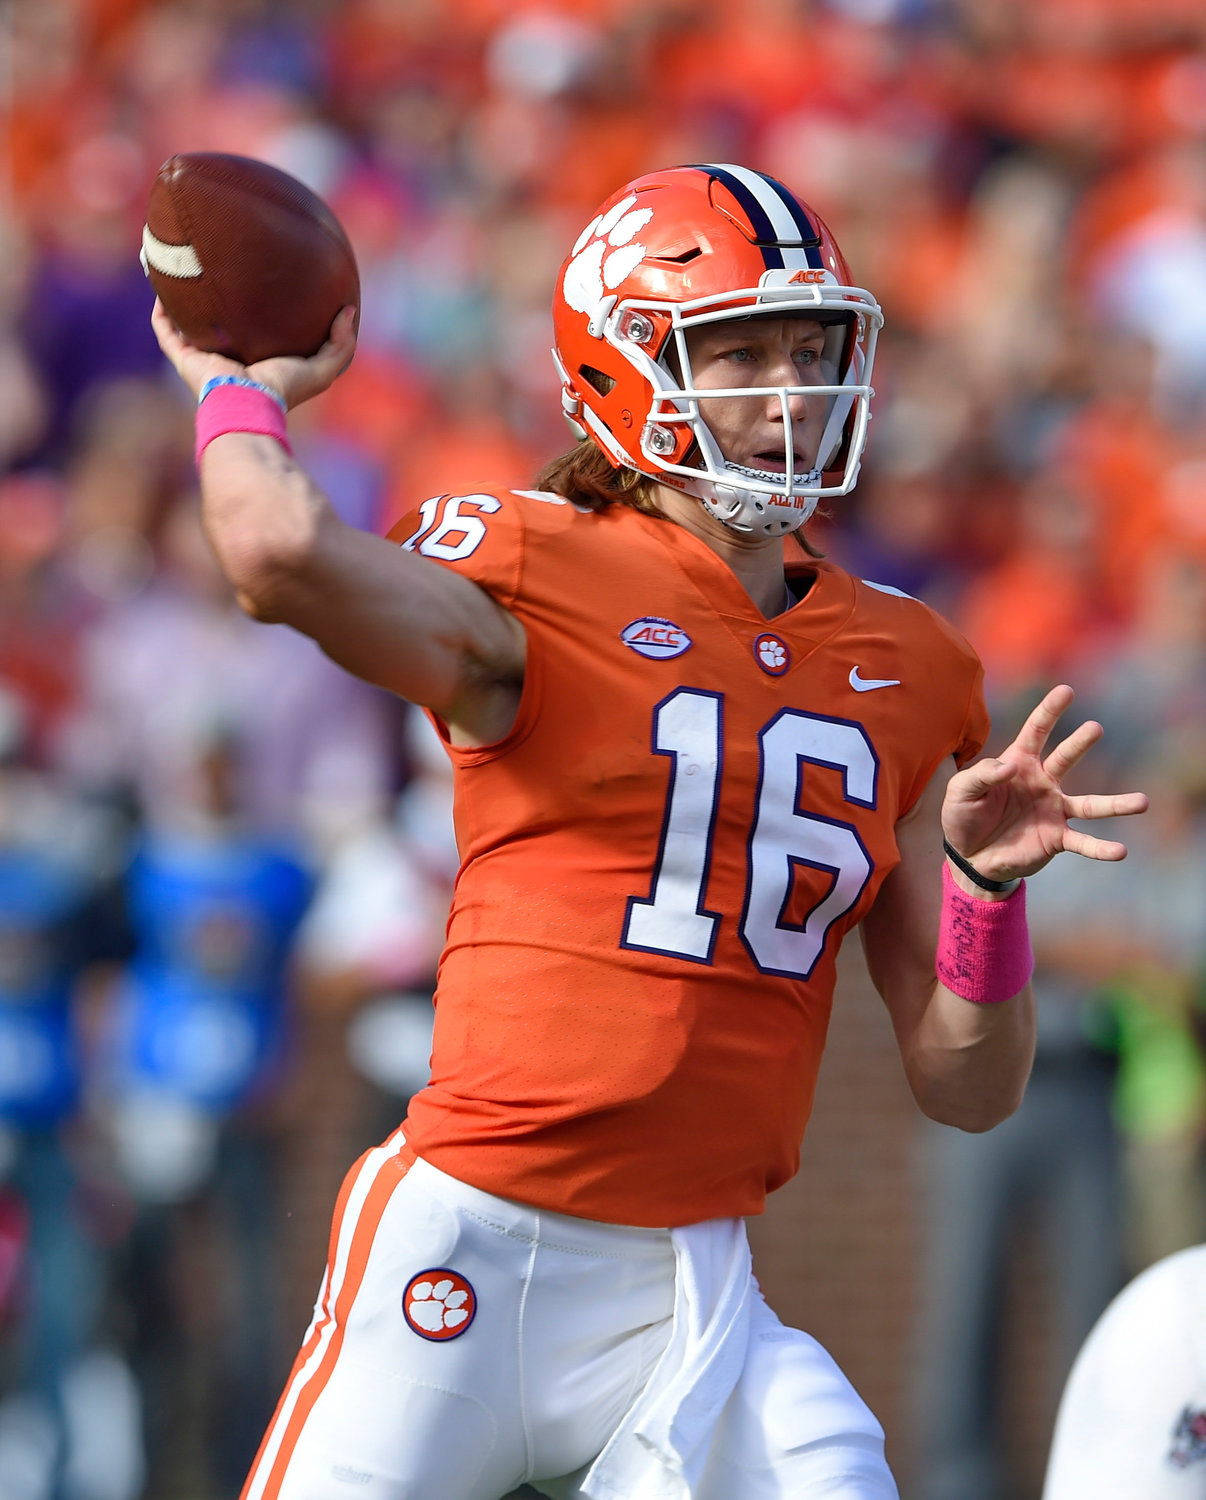 Lawrence leads Clemson to rout of NC State | The Daily ...